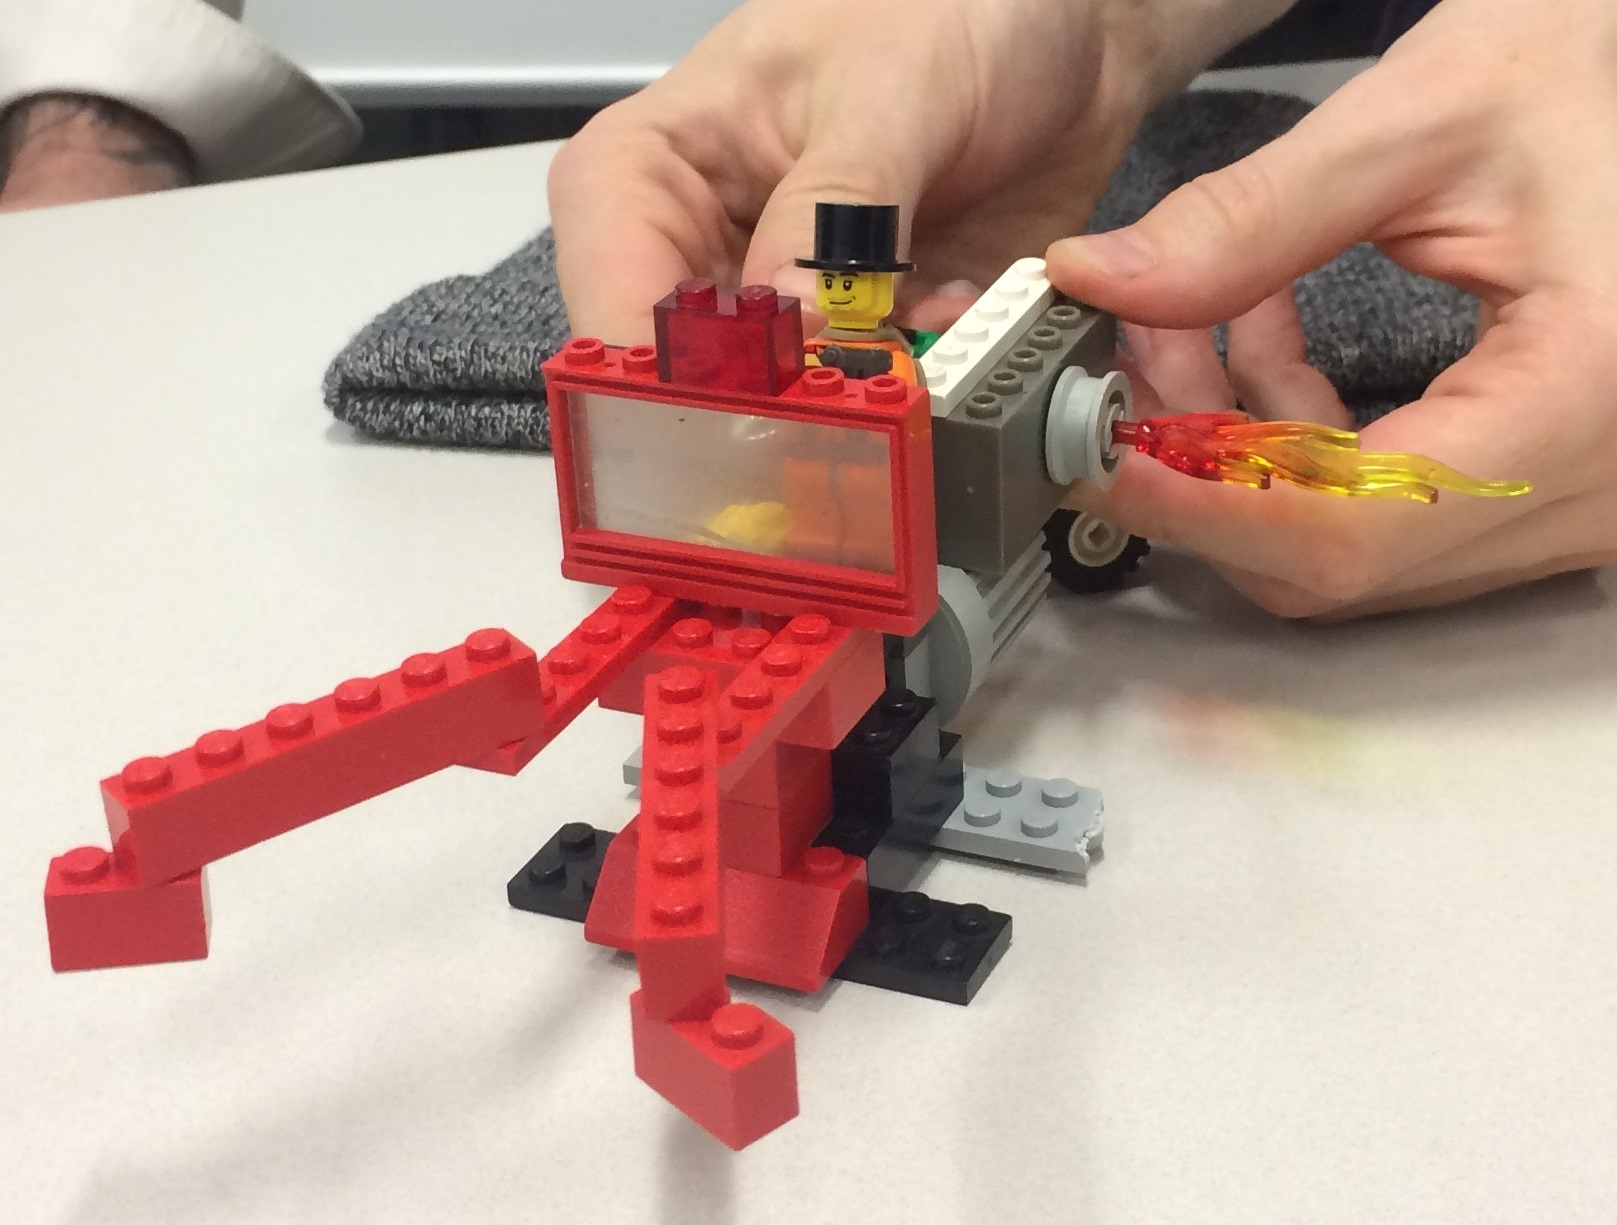 Rapid prototyping, shown here with Lego blocks, is one of the skills students learn in the INNO curriculum.